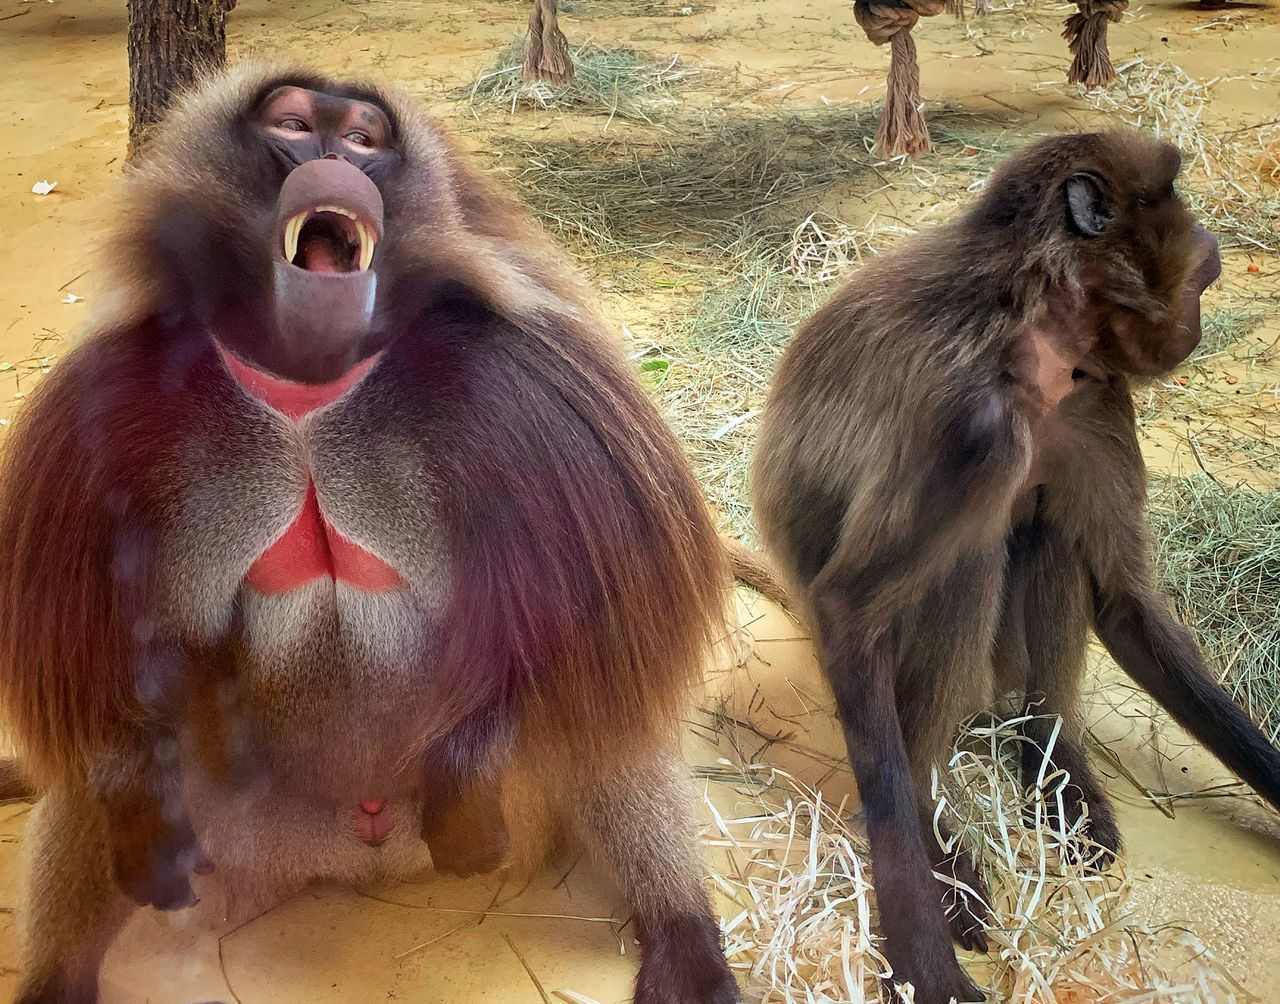 primate, mammal, group of animals, animal wildlife, two animals, animals in the wild, vertebrate, day, no people, zoo, sitting, ape, outdoors, young animal, nature, animals in captivity, animal family, baboon, mouth open